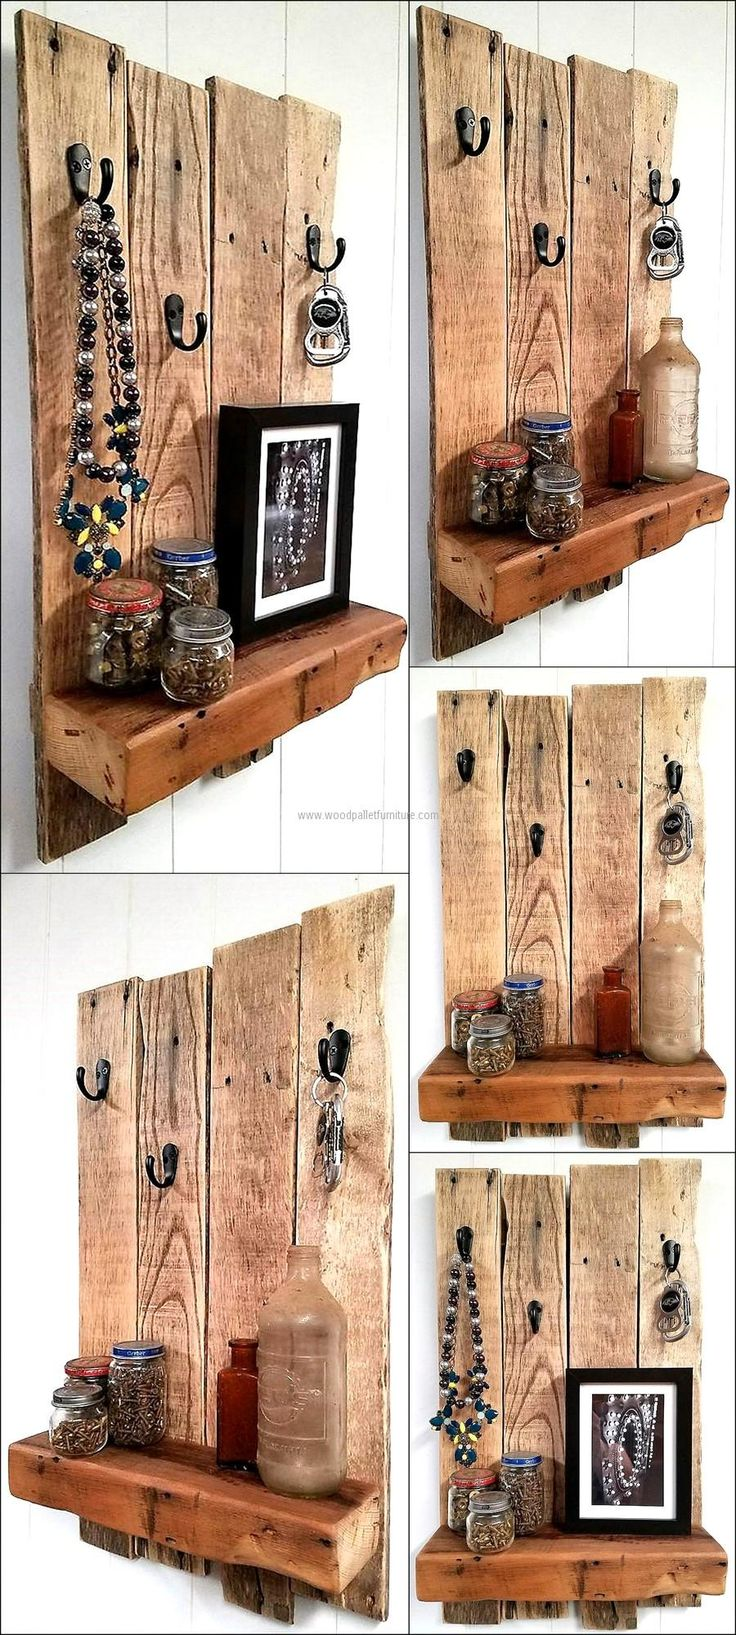 Recycled Wooden Pallet Shelf with Rustic Look